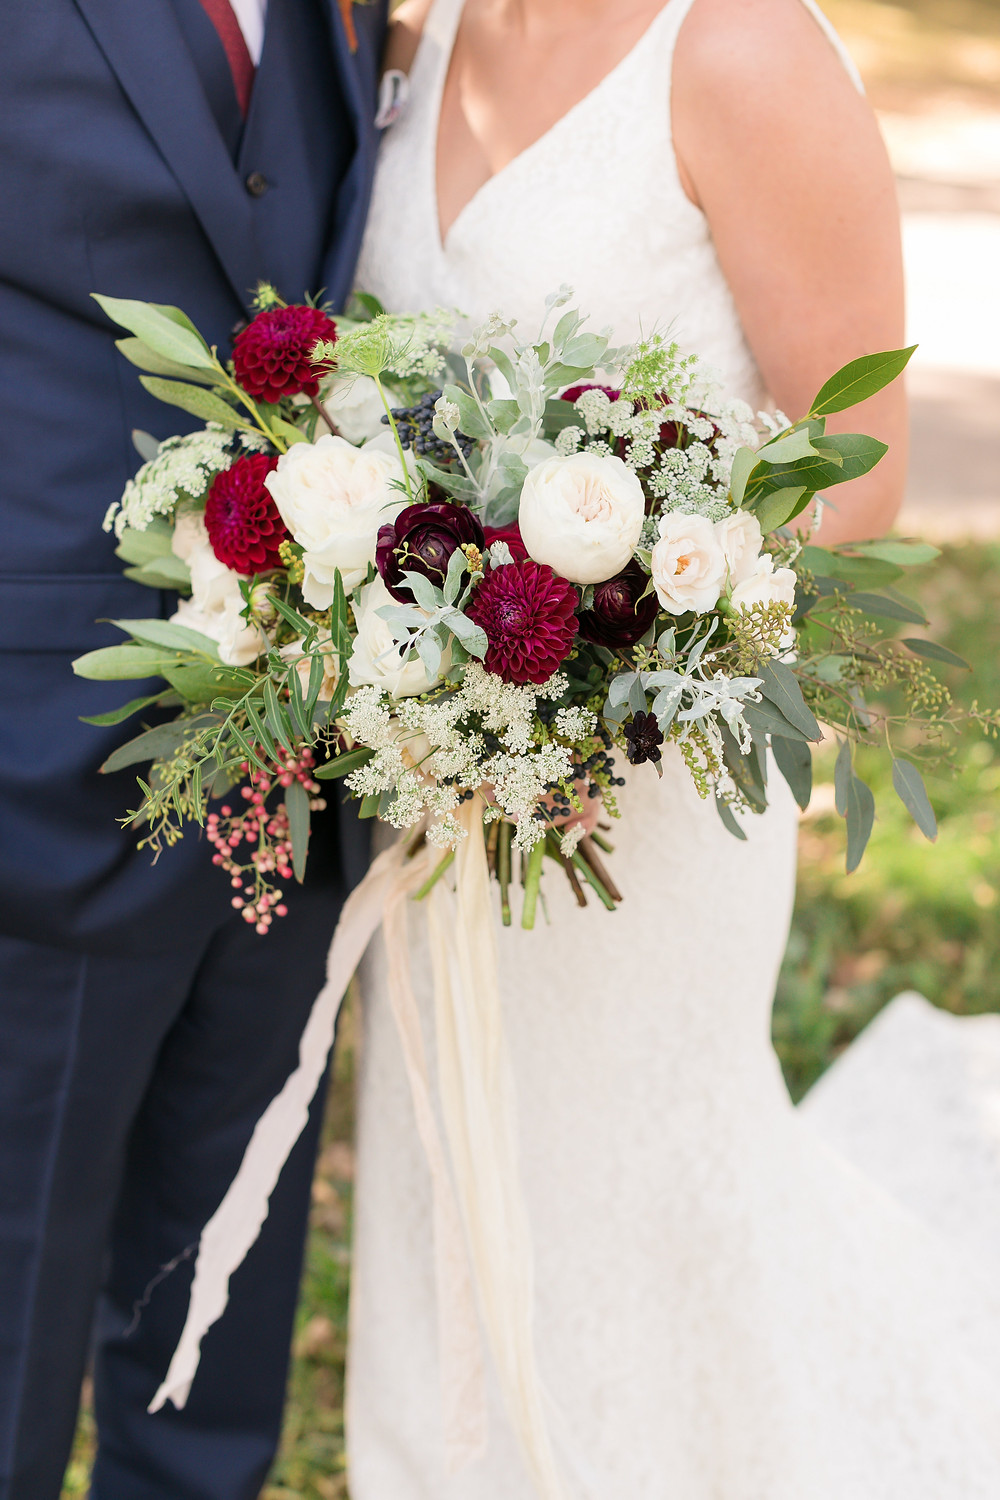 Lush bridal bouquet by studio bloom iowa with burgundy dahlias and white garden roses for a wedding at rapid creek cidery